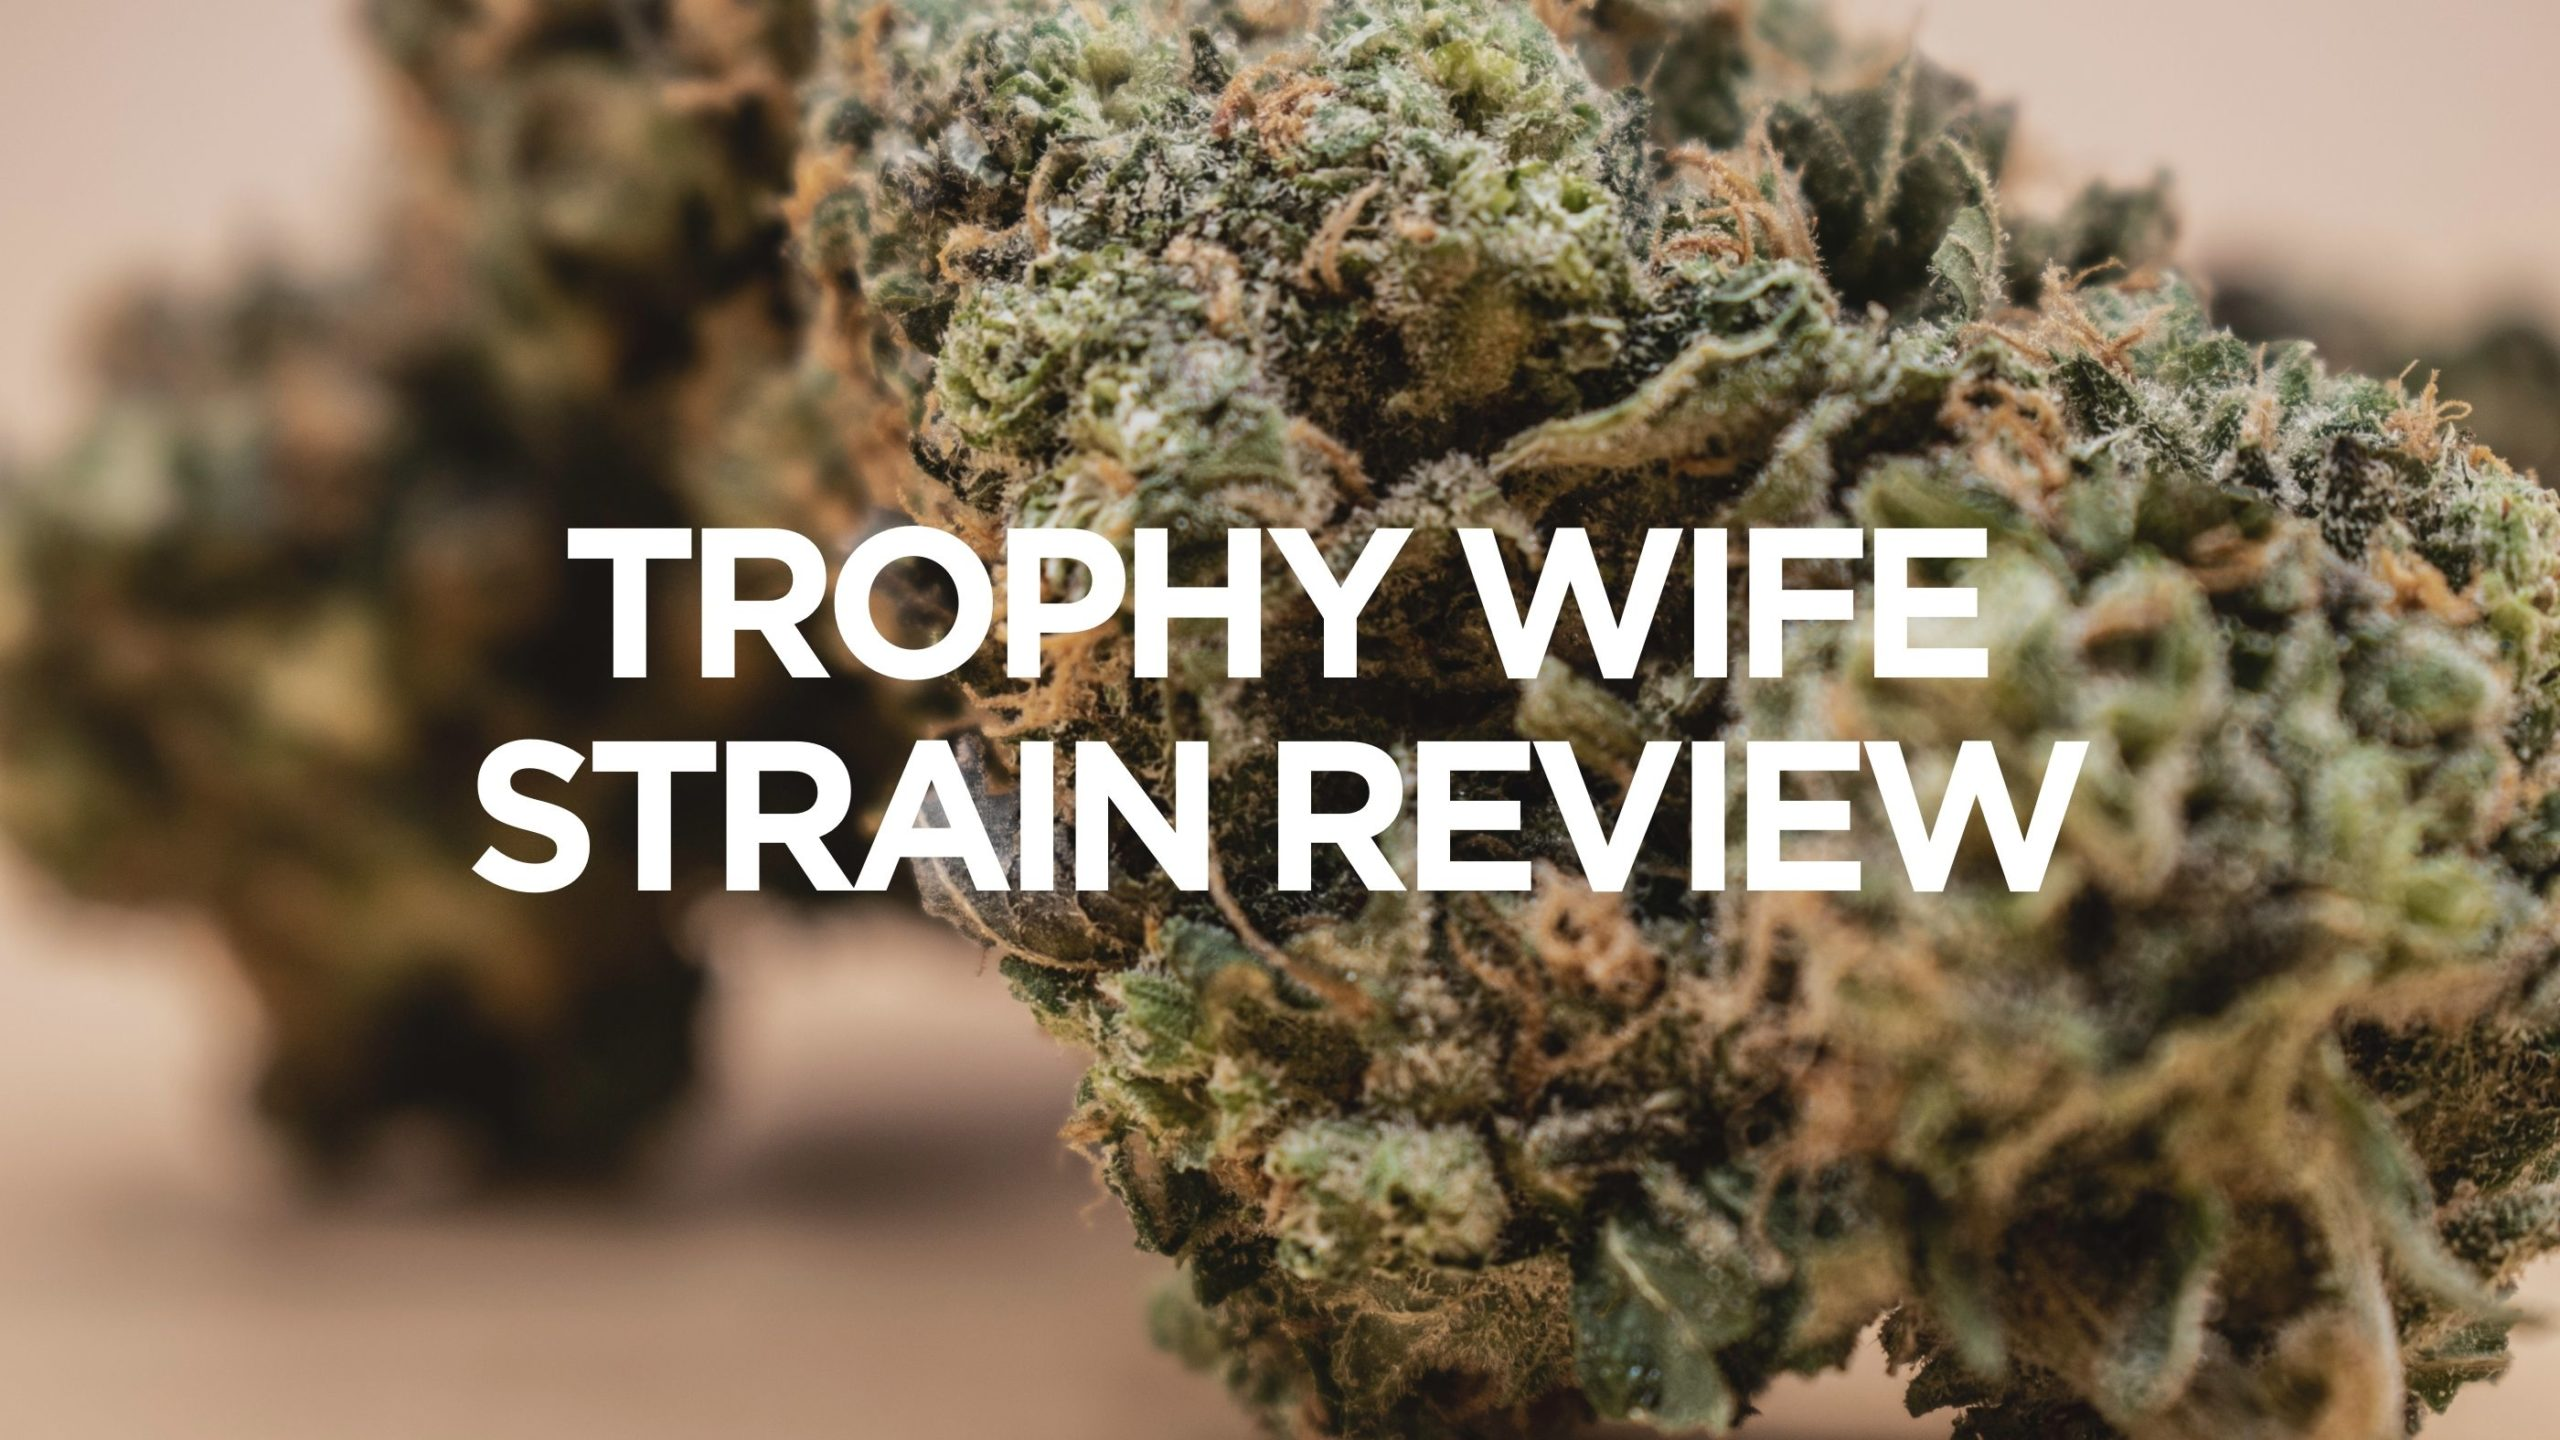 trophy-wife-strain-review